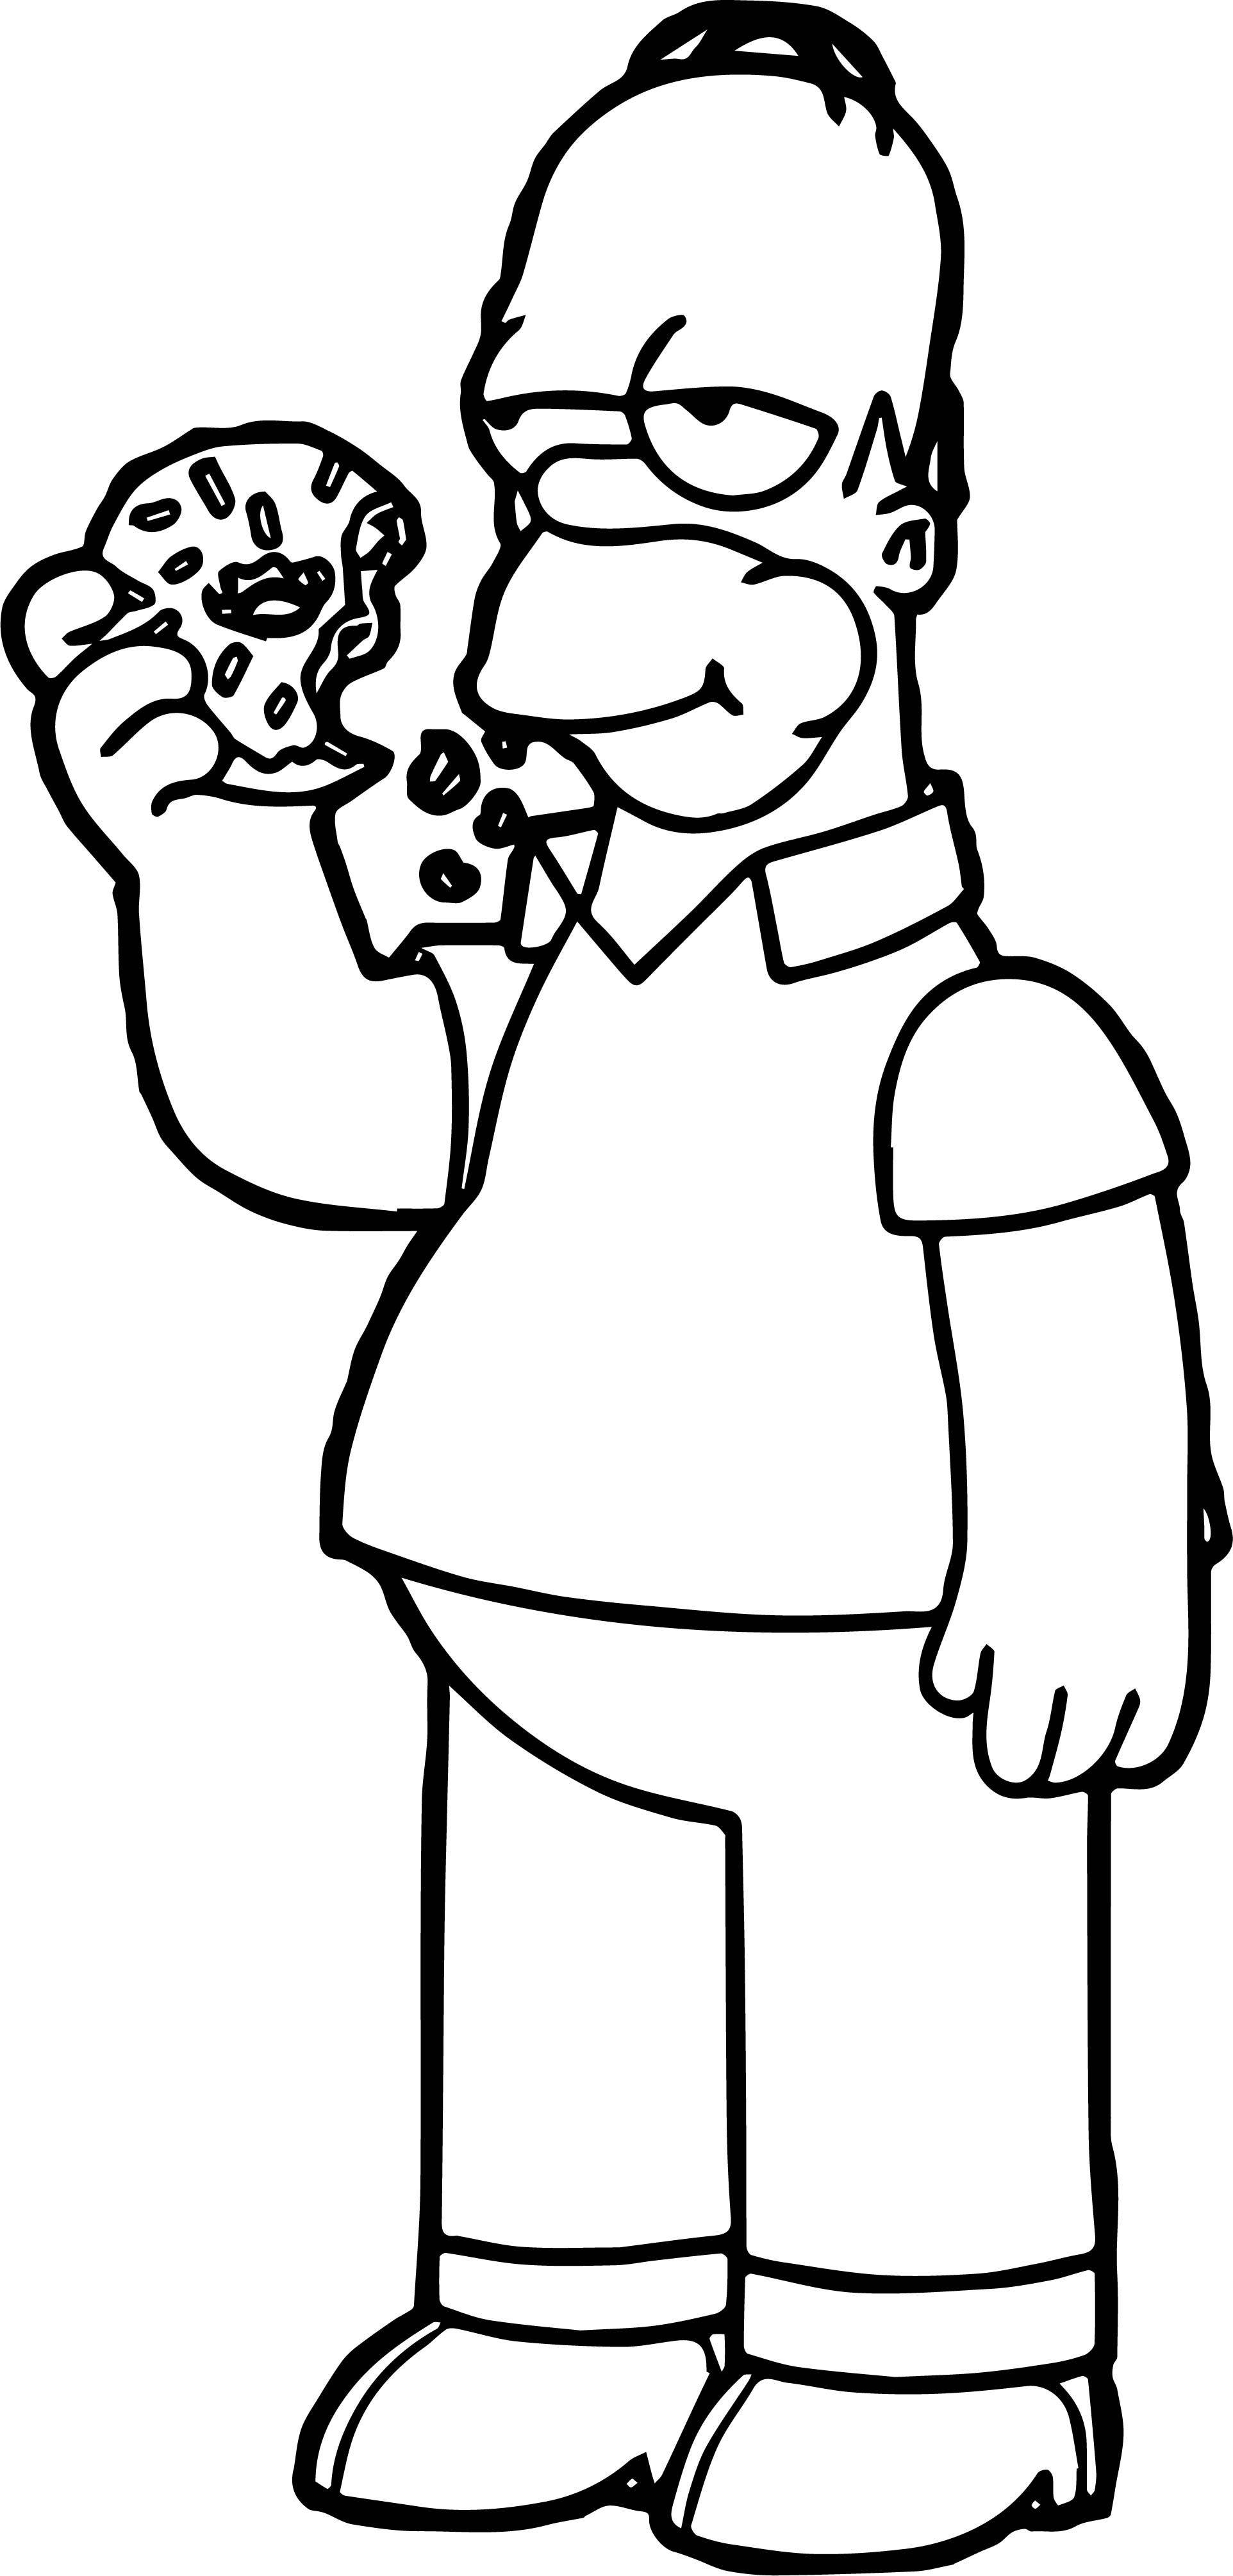 homer coloring pages - photo#2